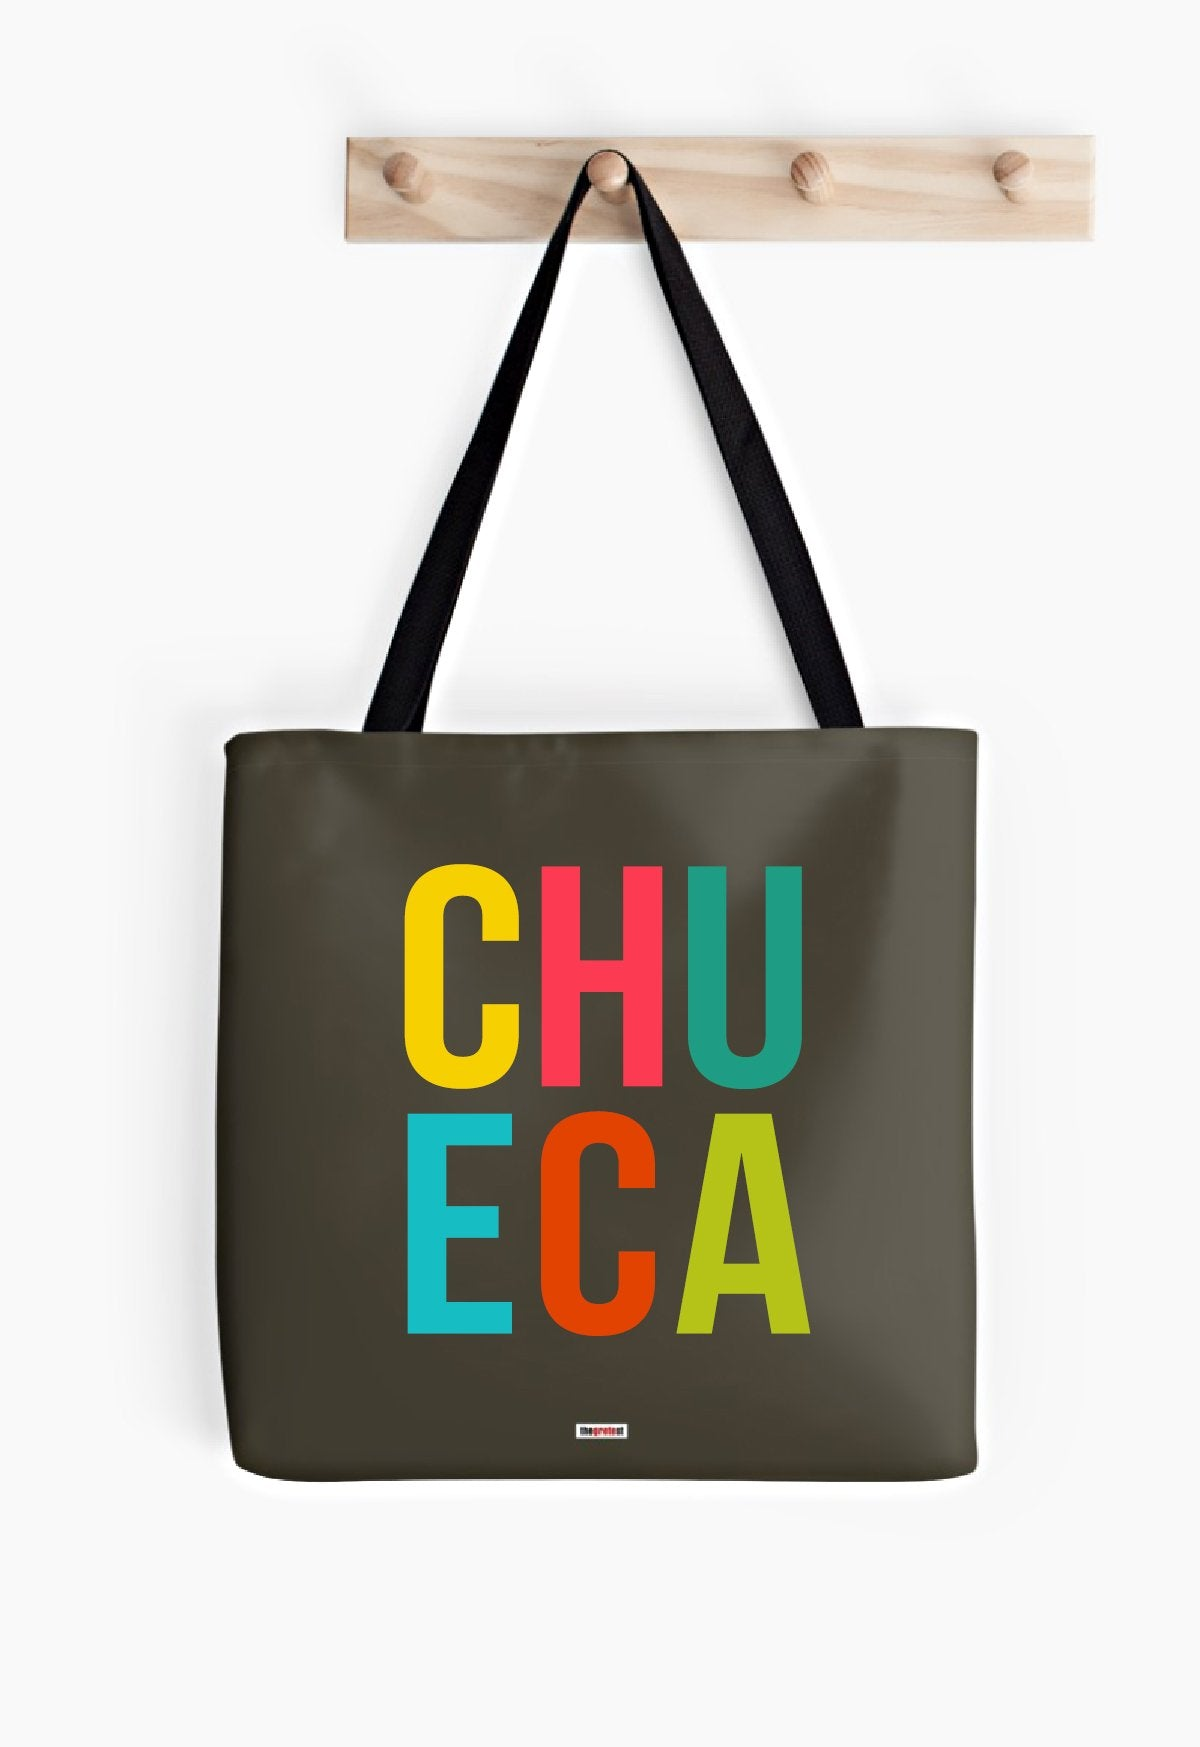 Chueca Tote bag - Madrid bag-TheGretest